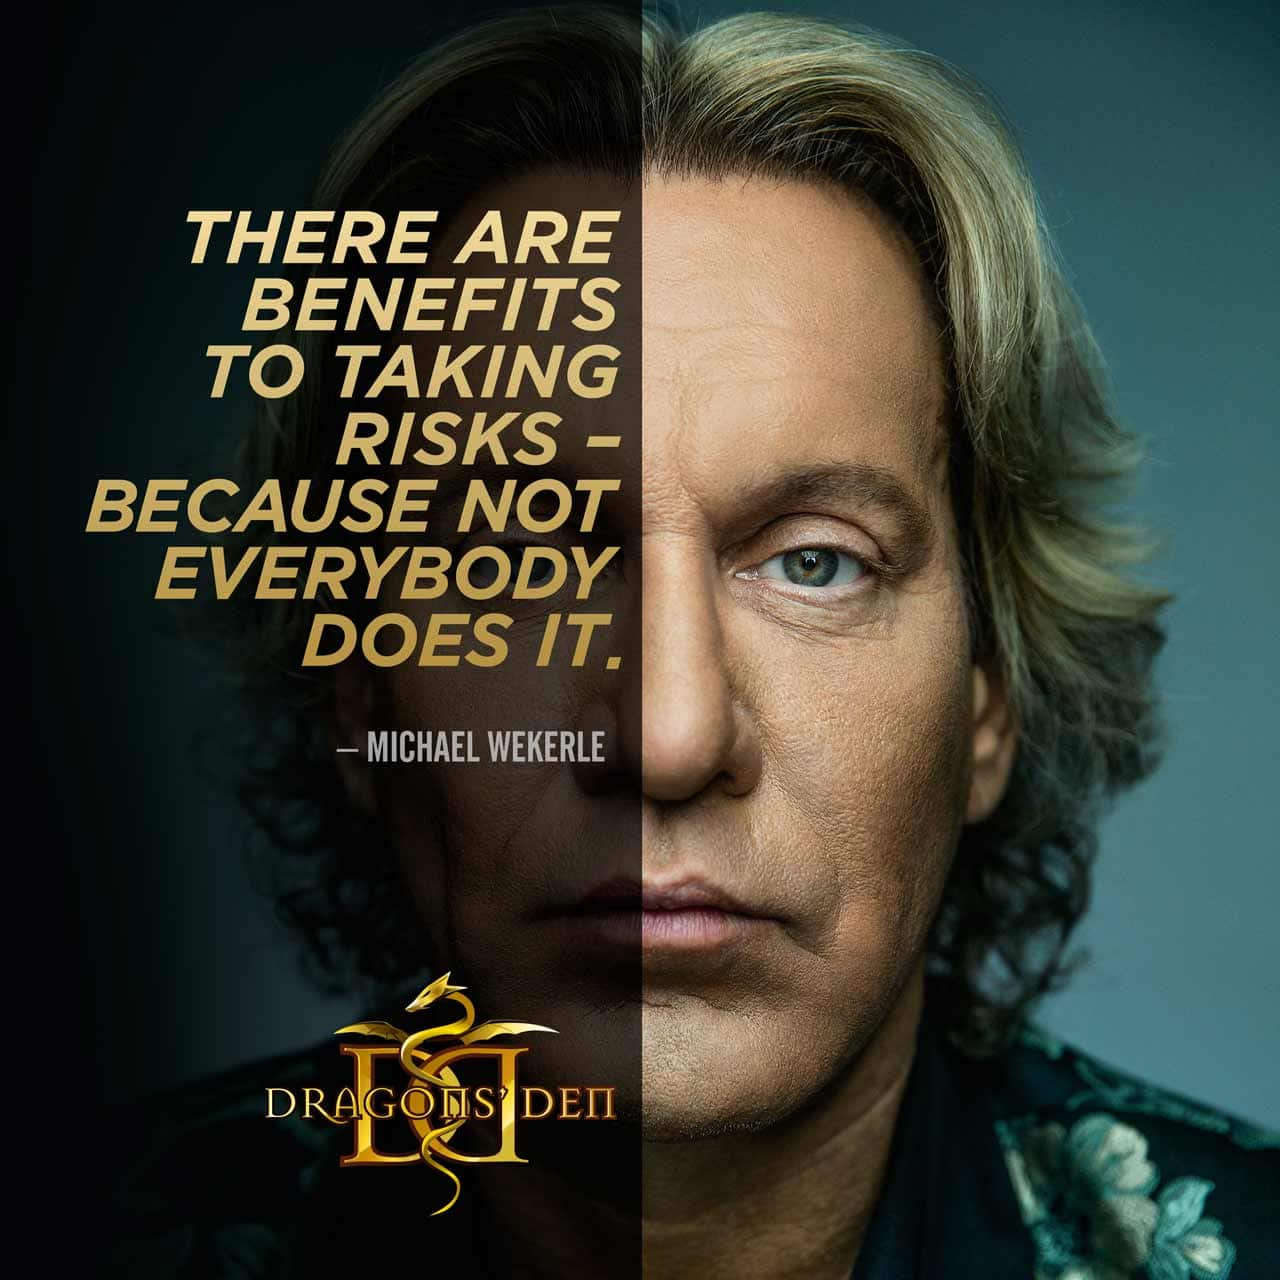 There are benefits to taking risks — because not everybody does it. Said by Michael Wekerle